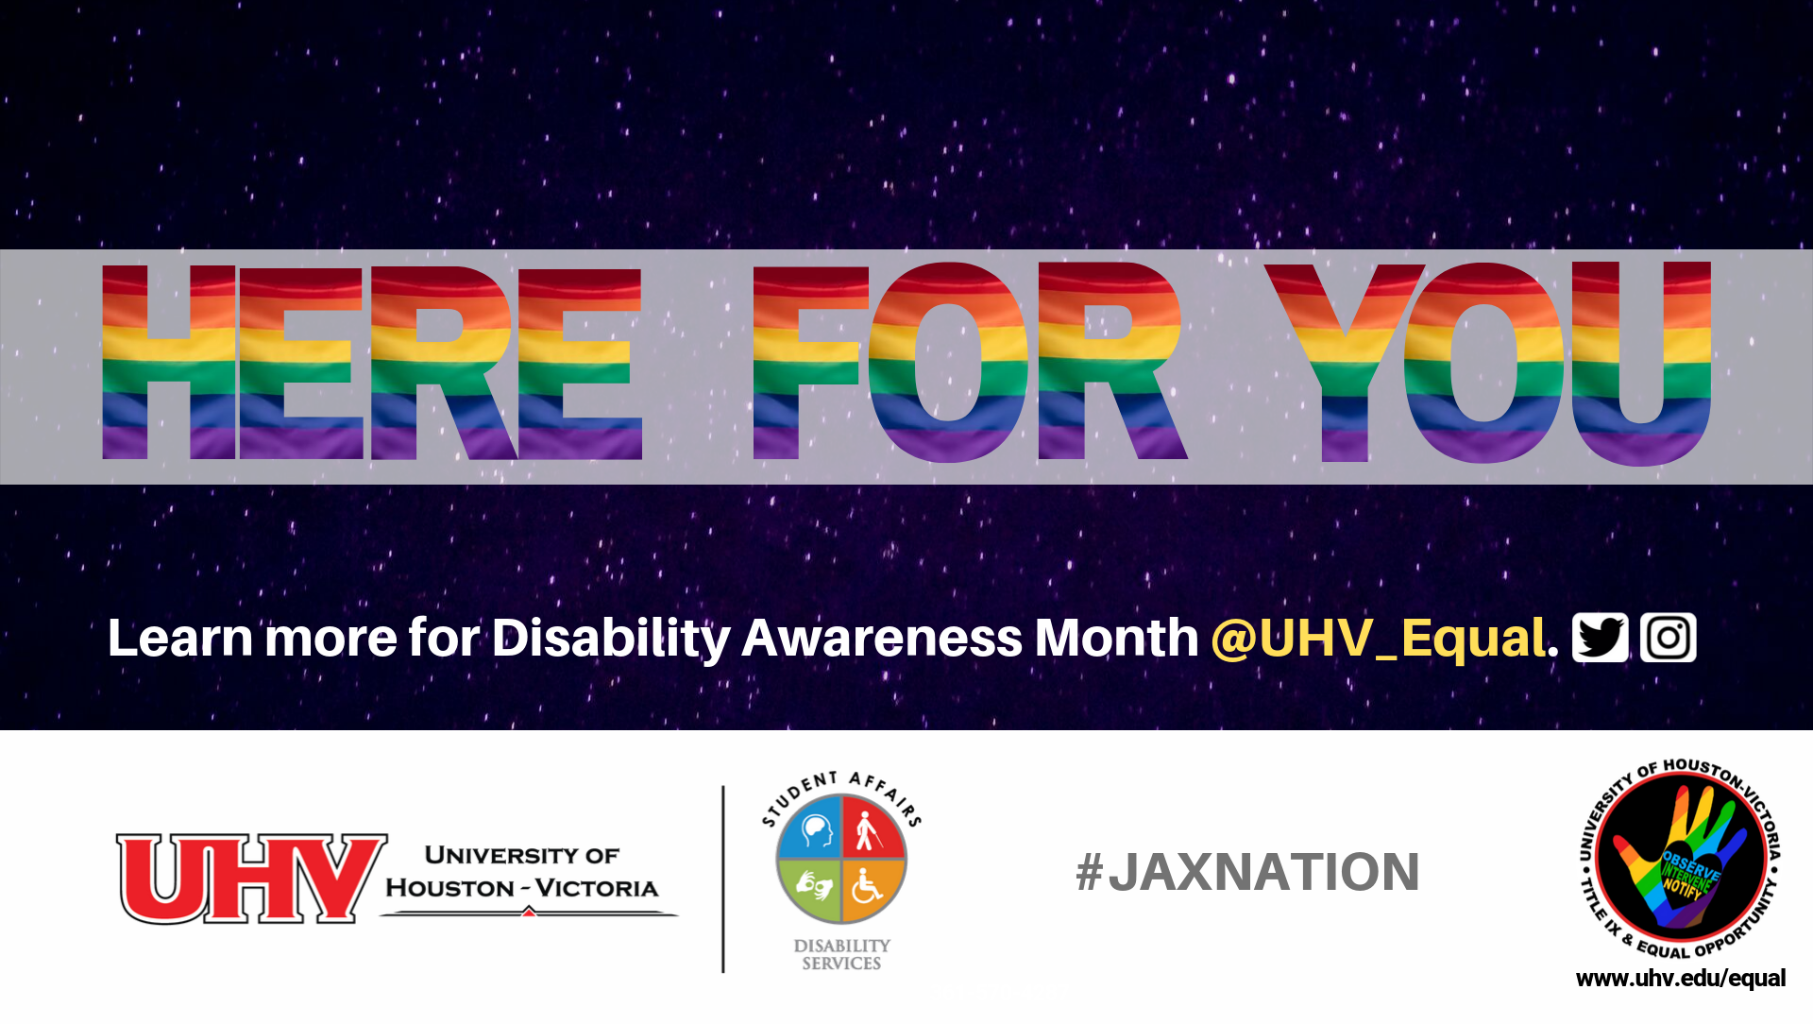 Here for You. Sharing information and resources for Disability Awareness Month @UHV_Equal. University of Houston-Victoria Title IX and Equal Opportunity Logo (rainbow hand with heart insert with words Observe, Intervene, Notify). UHV Disability Services logo. #jaxnation